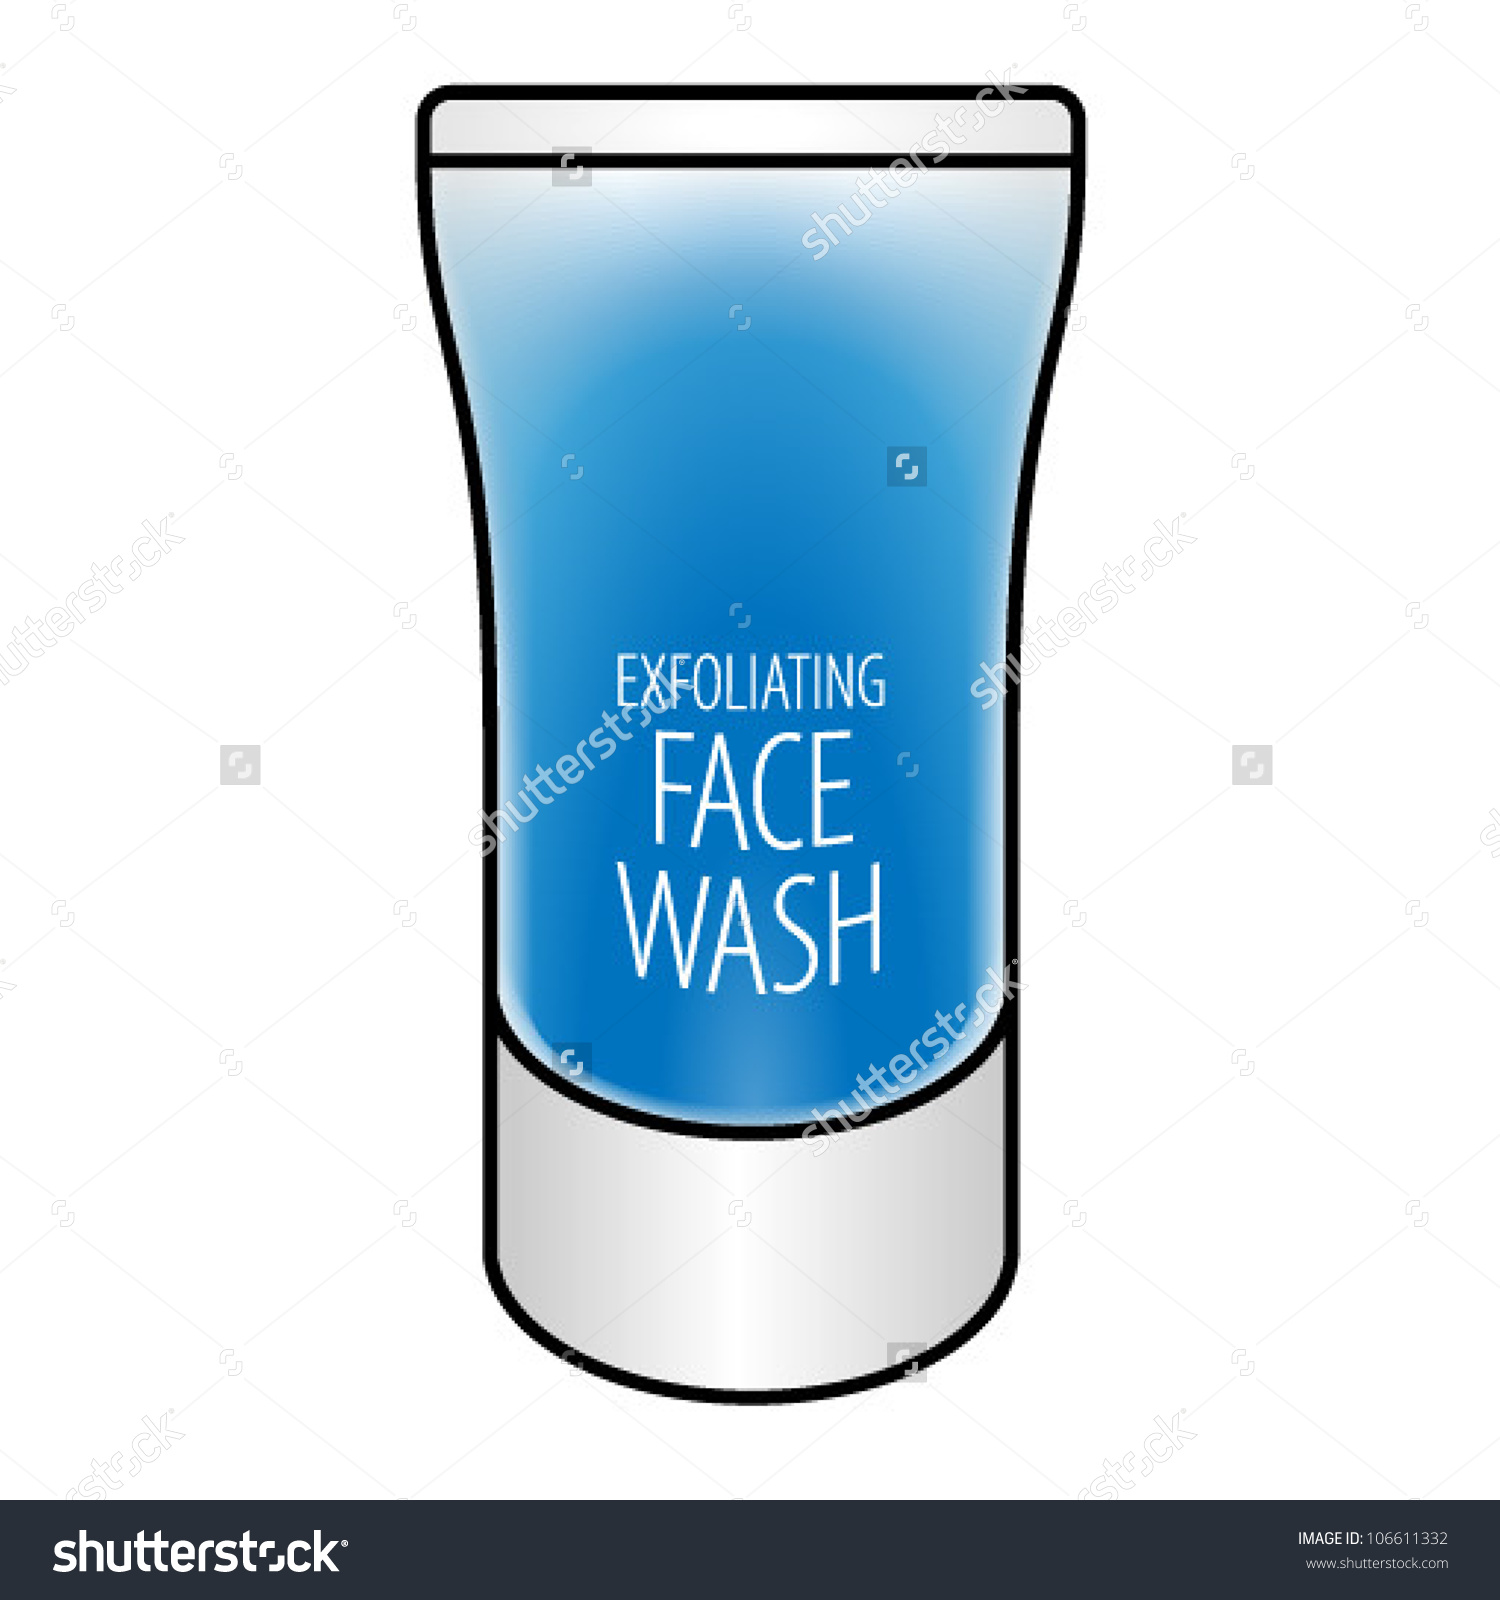 Face wash bottle clipart.